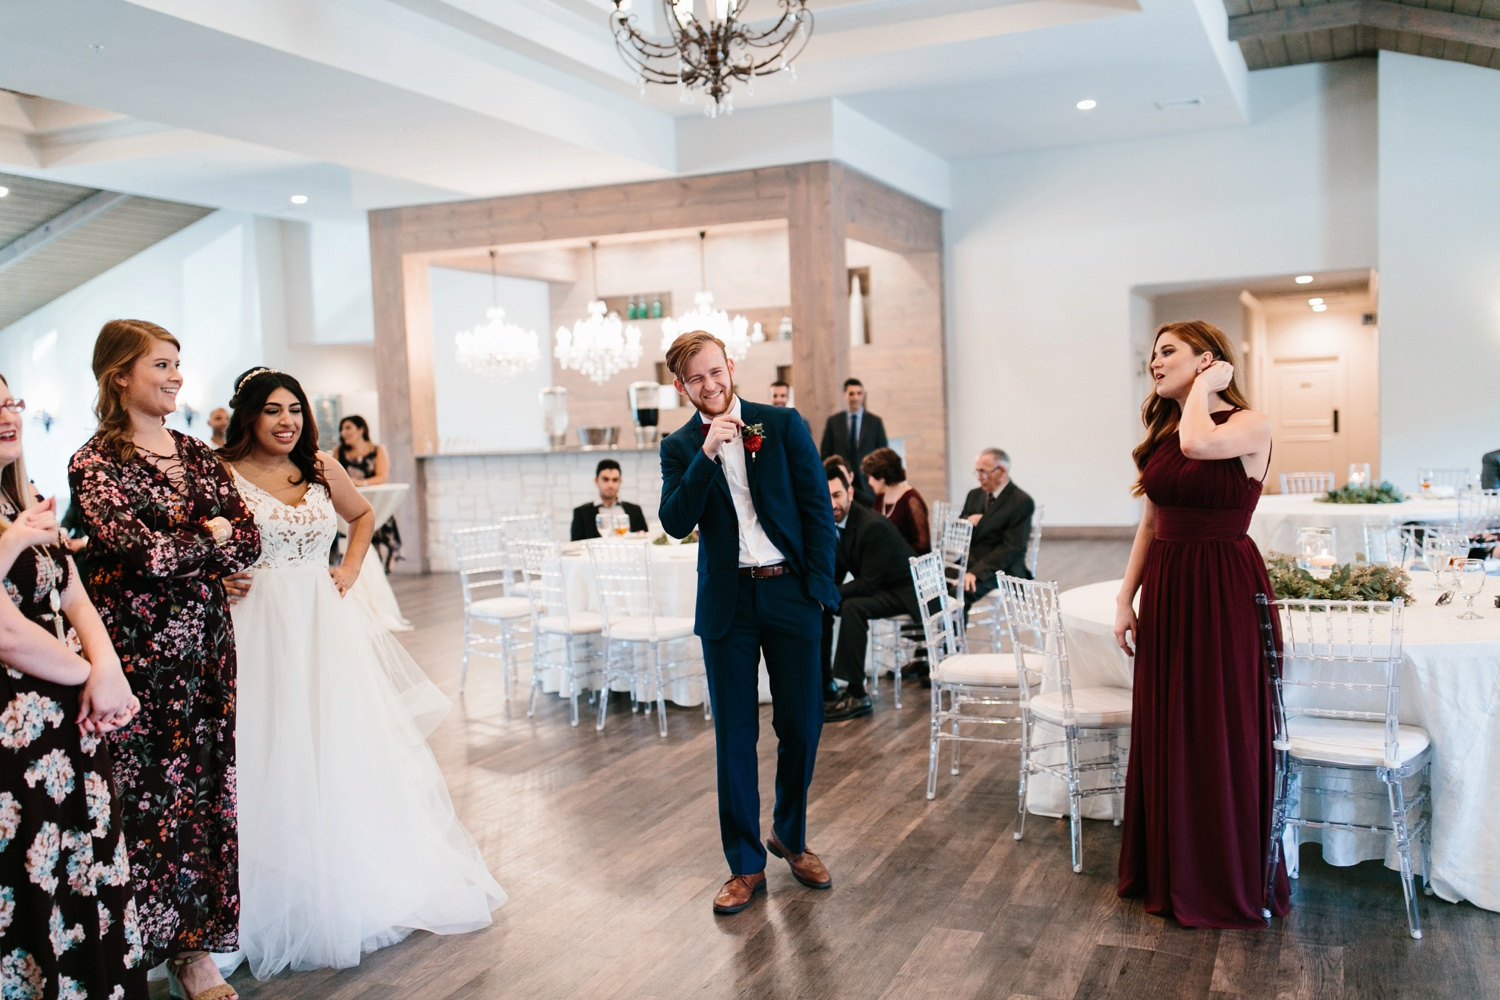 Grant + Lysette | a vibrant, deep burgundy and navy, and mixed metals wedding at Hidden Pines Chapel by North Texas Wedding Photographer Rachel Meagan Photography 186